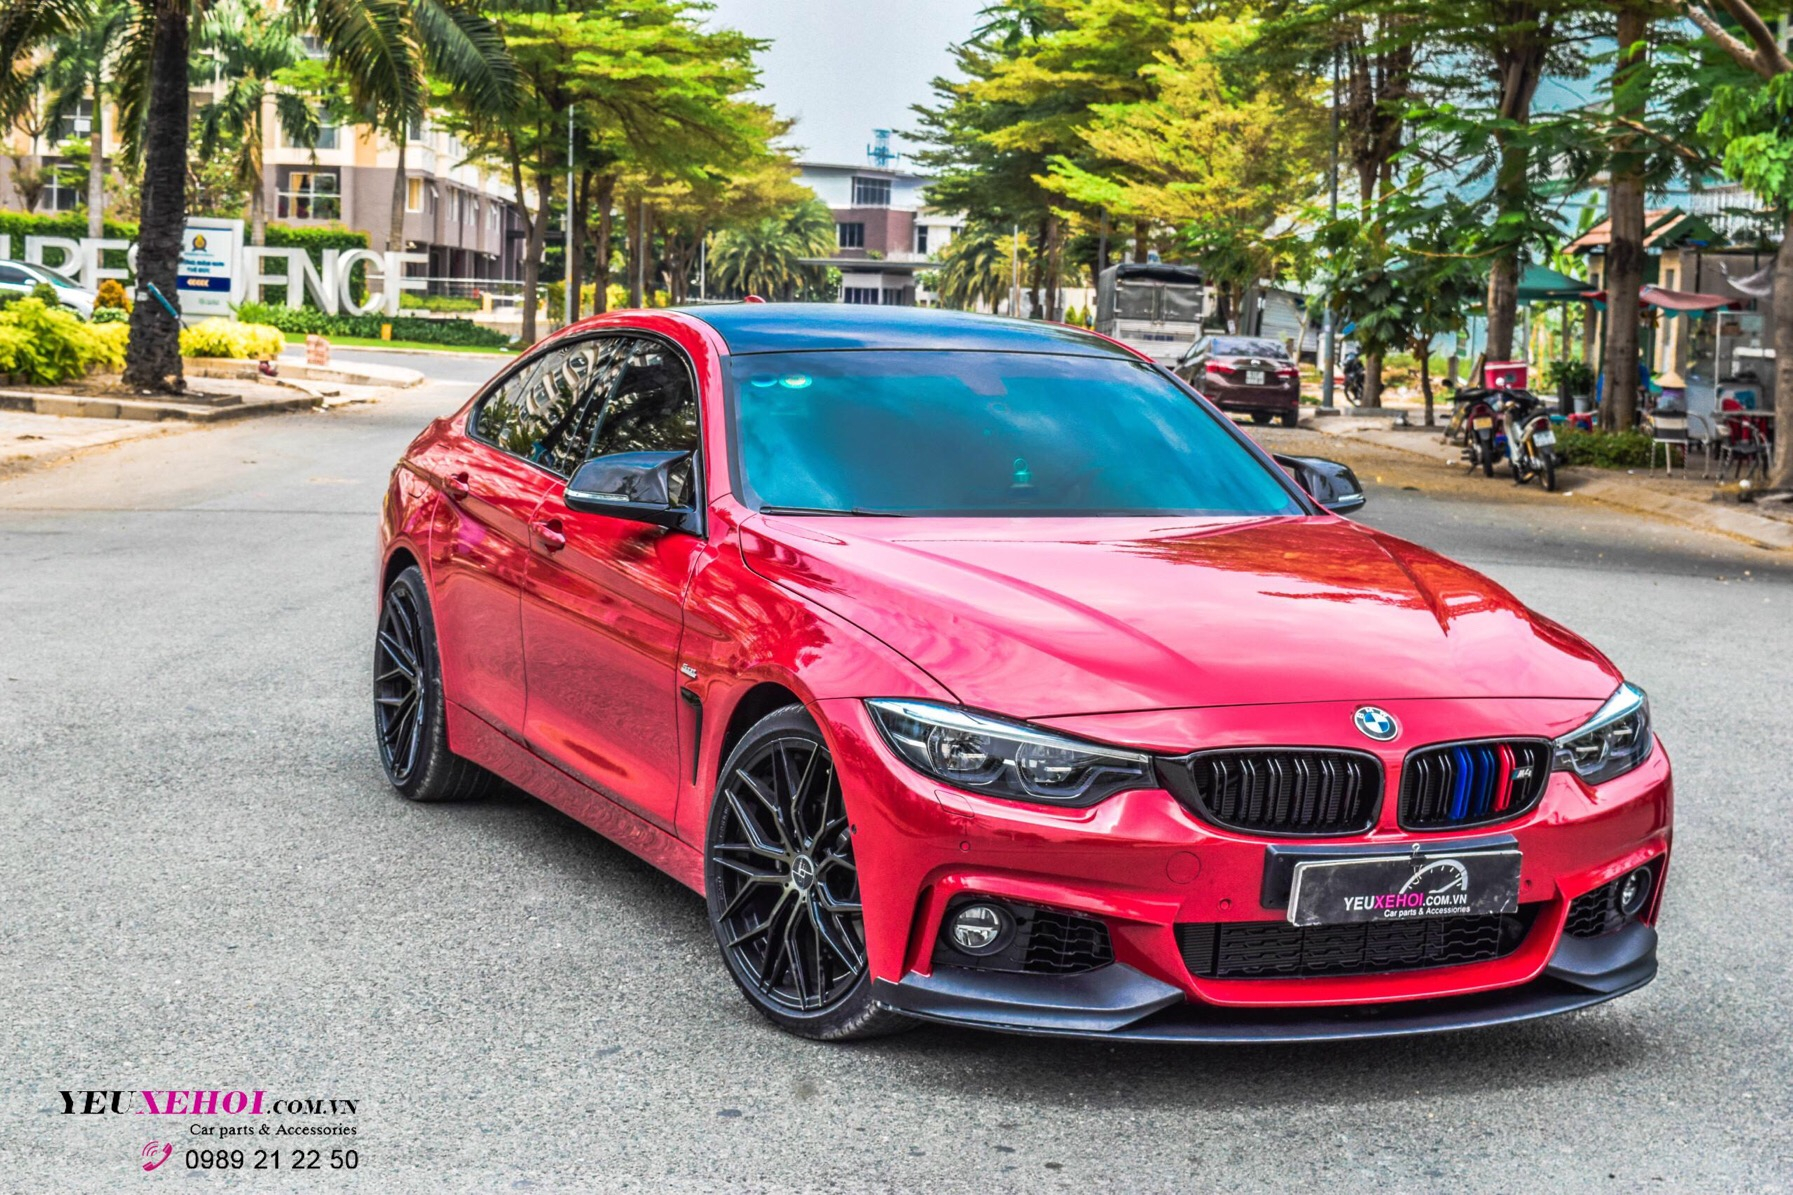 BMW F36 430 GRANCOUPE MPERFORMAN BODYKIT / 19 INCHES 305FORGED